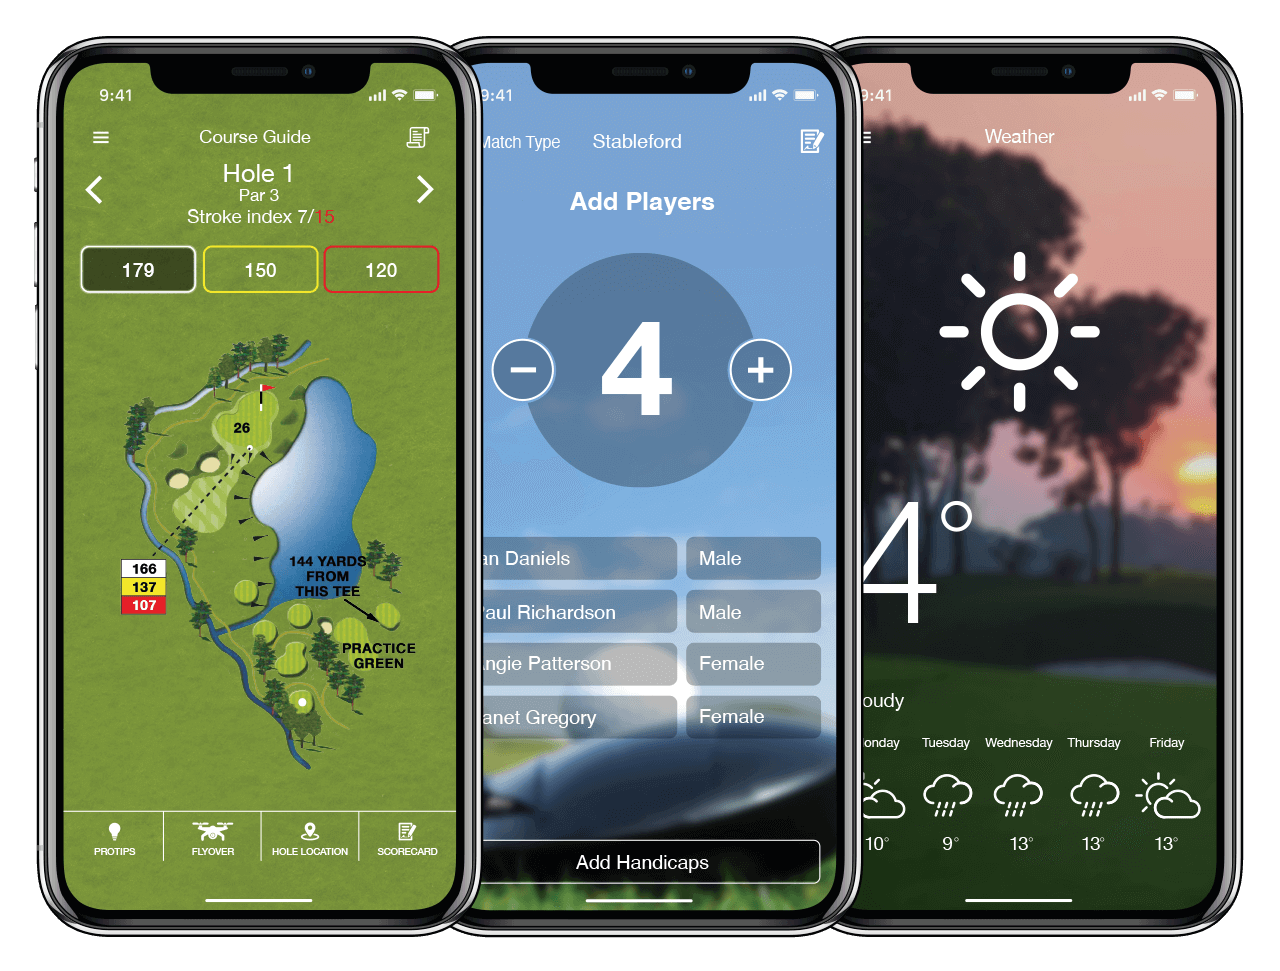 coursemate_golf_club_app_for_the_golfer